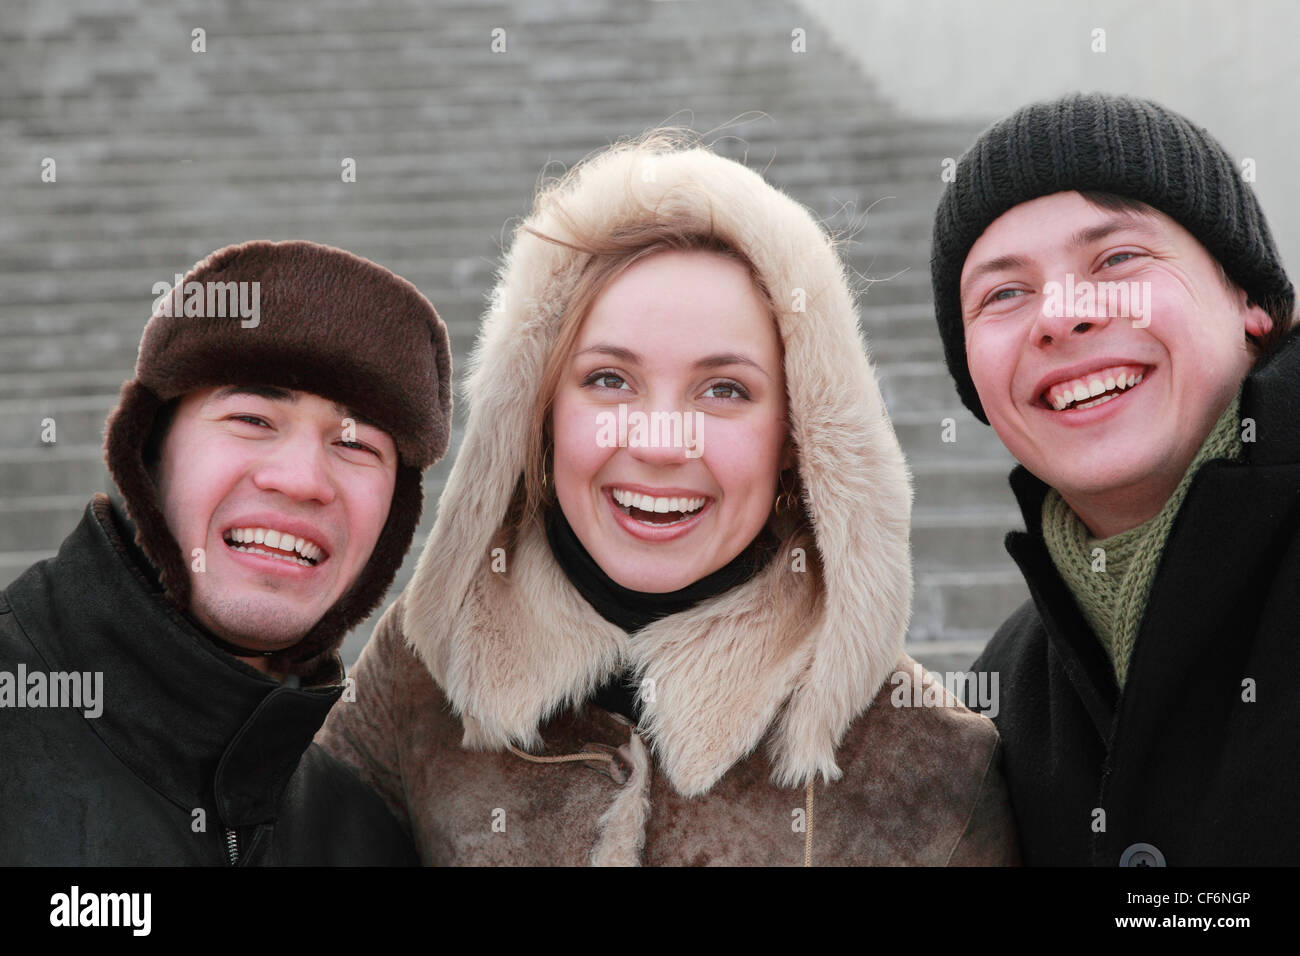 encounter of old friends after long years of separation, trio in winter clothes - Stock Image